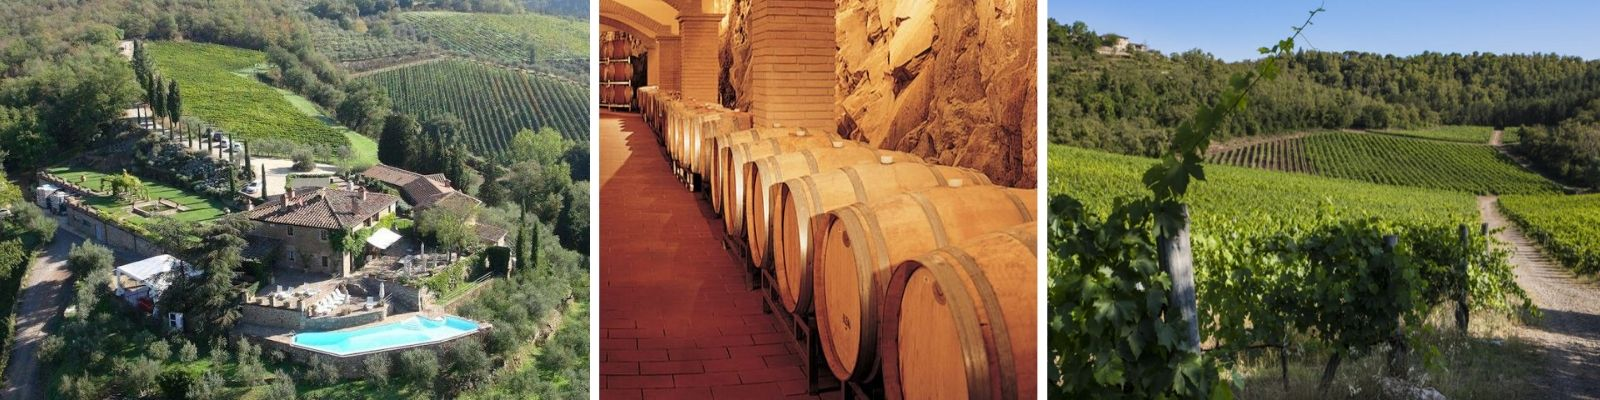 Capannelle Winery Vineyards And Wine Cellar